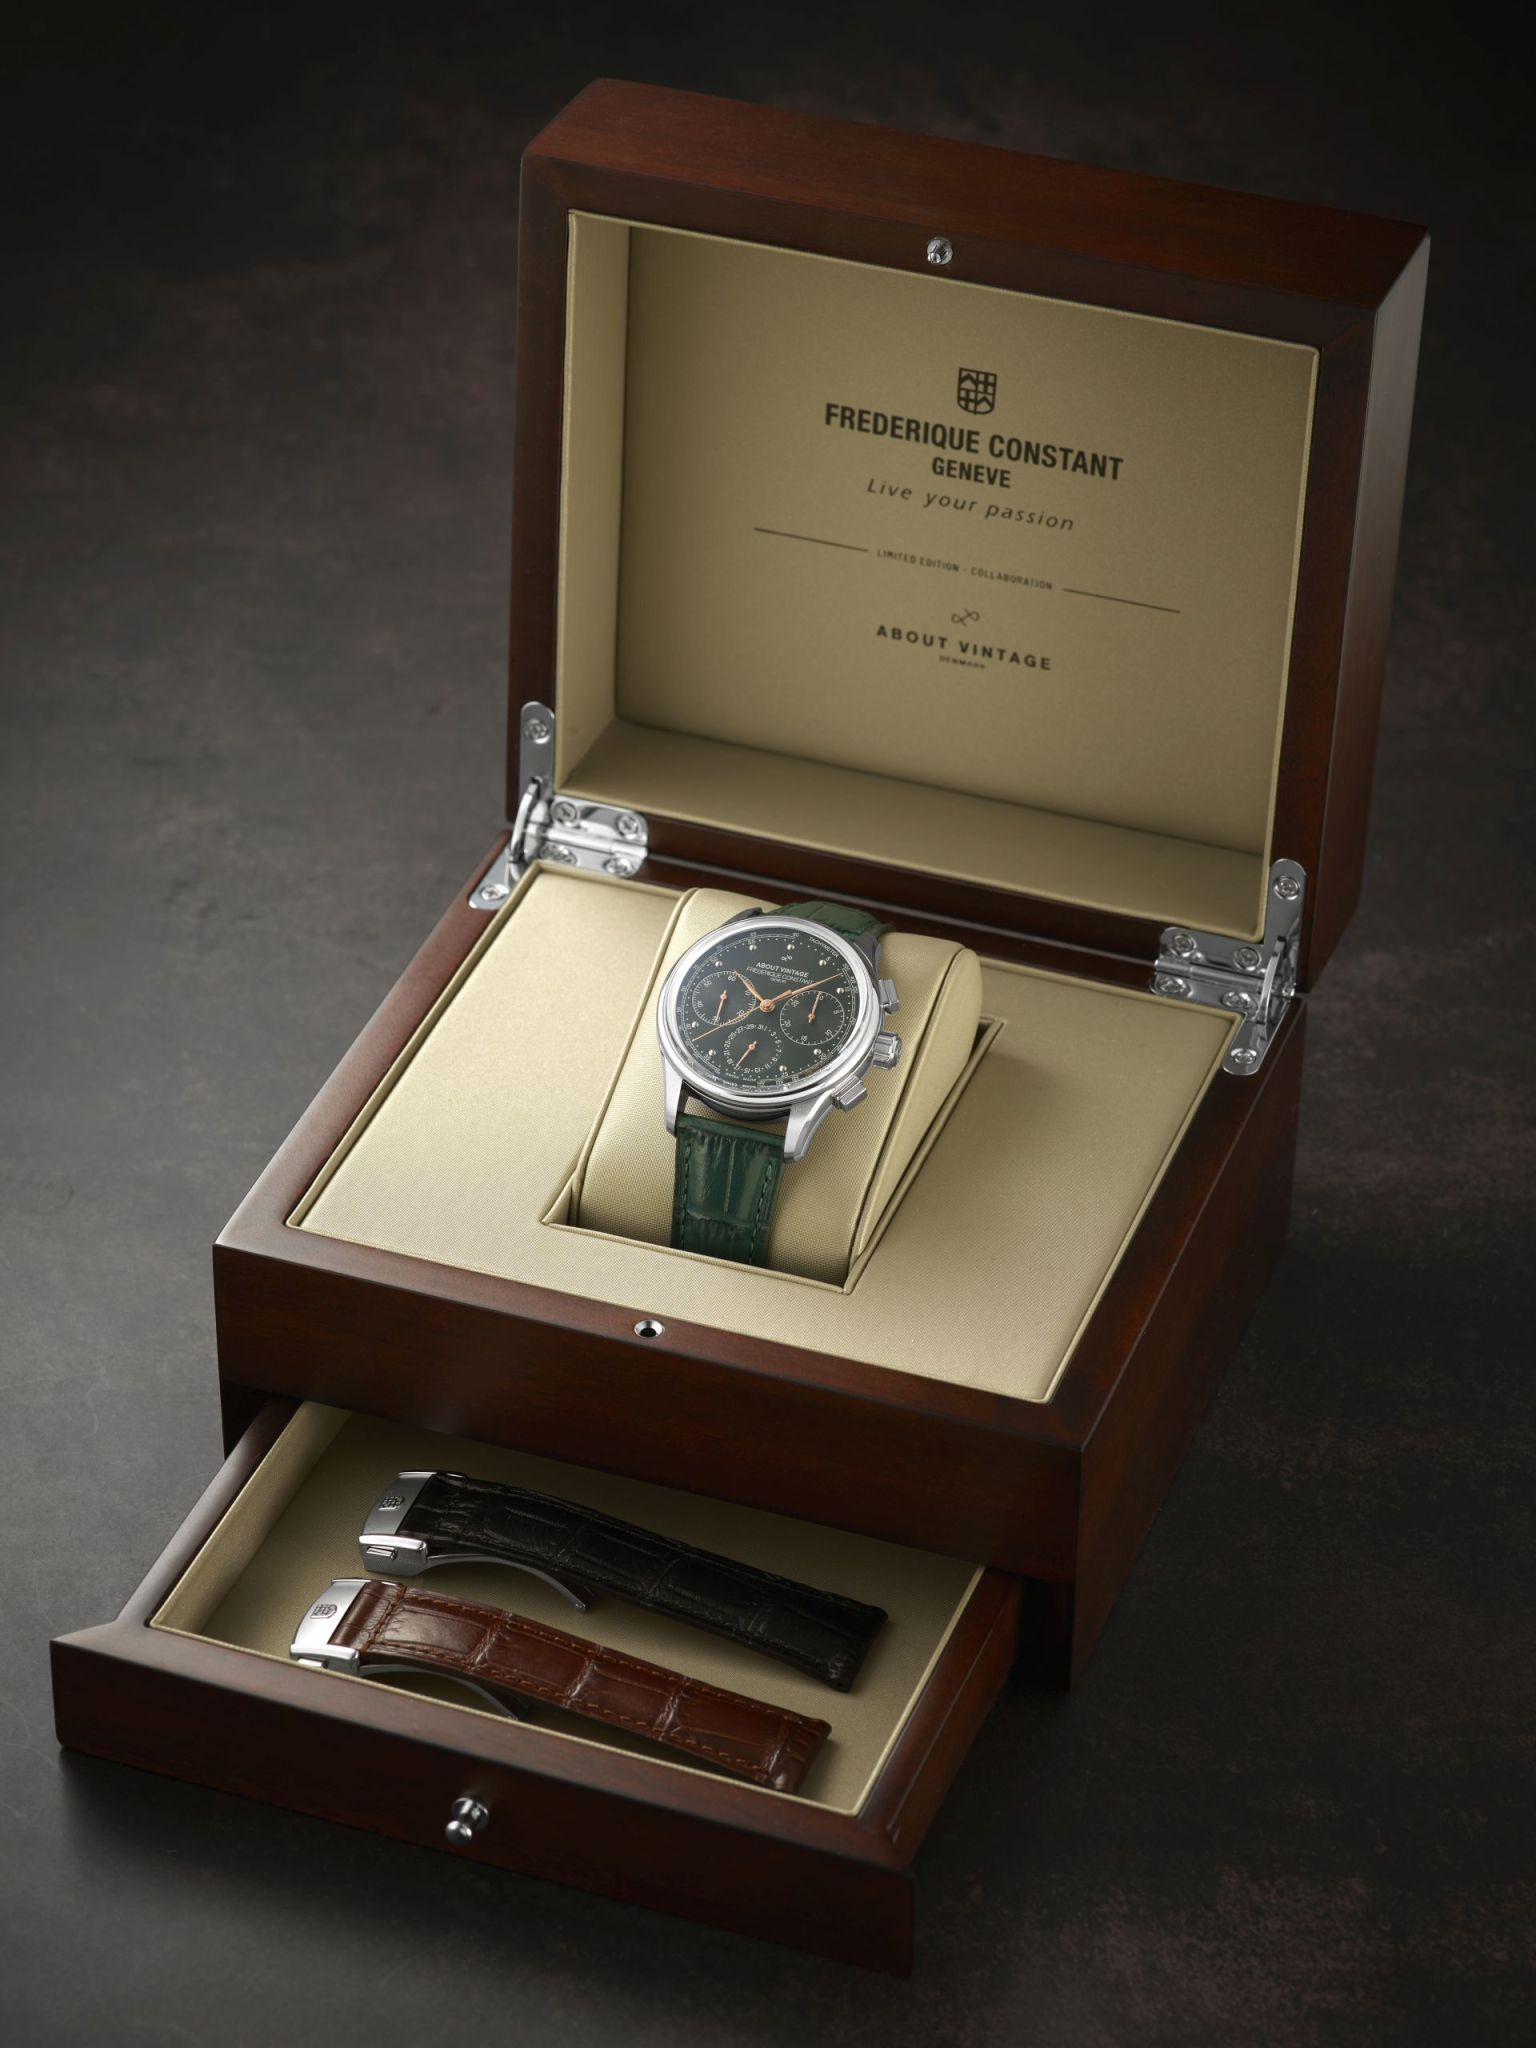 Frederique-Constant-Flyback-Chronograph-Manufacture-About-Vintage-Special-Edition-1.jpg